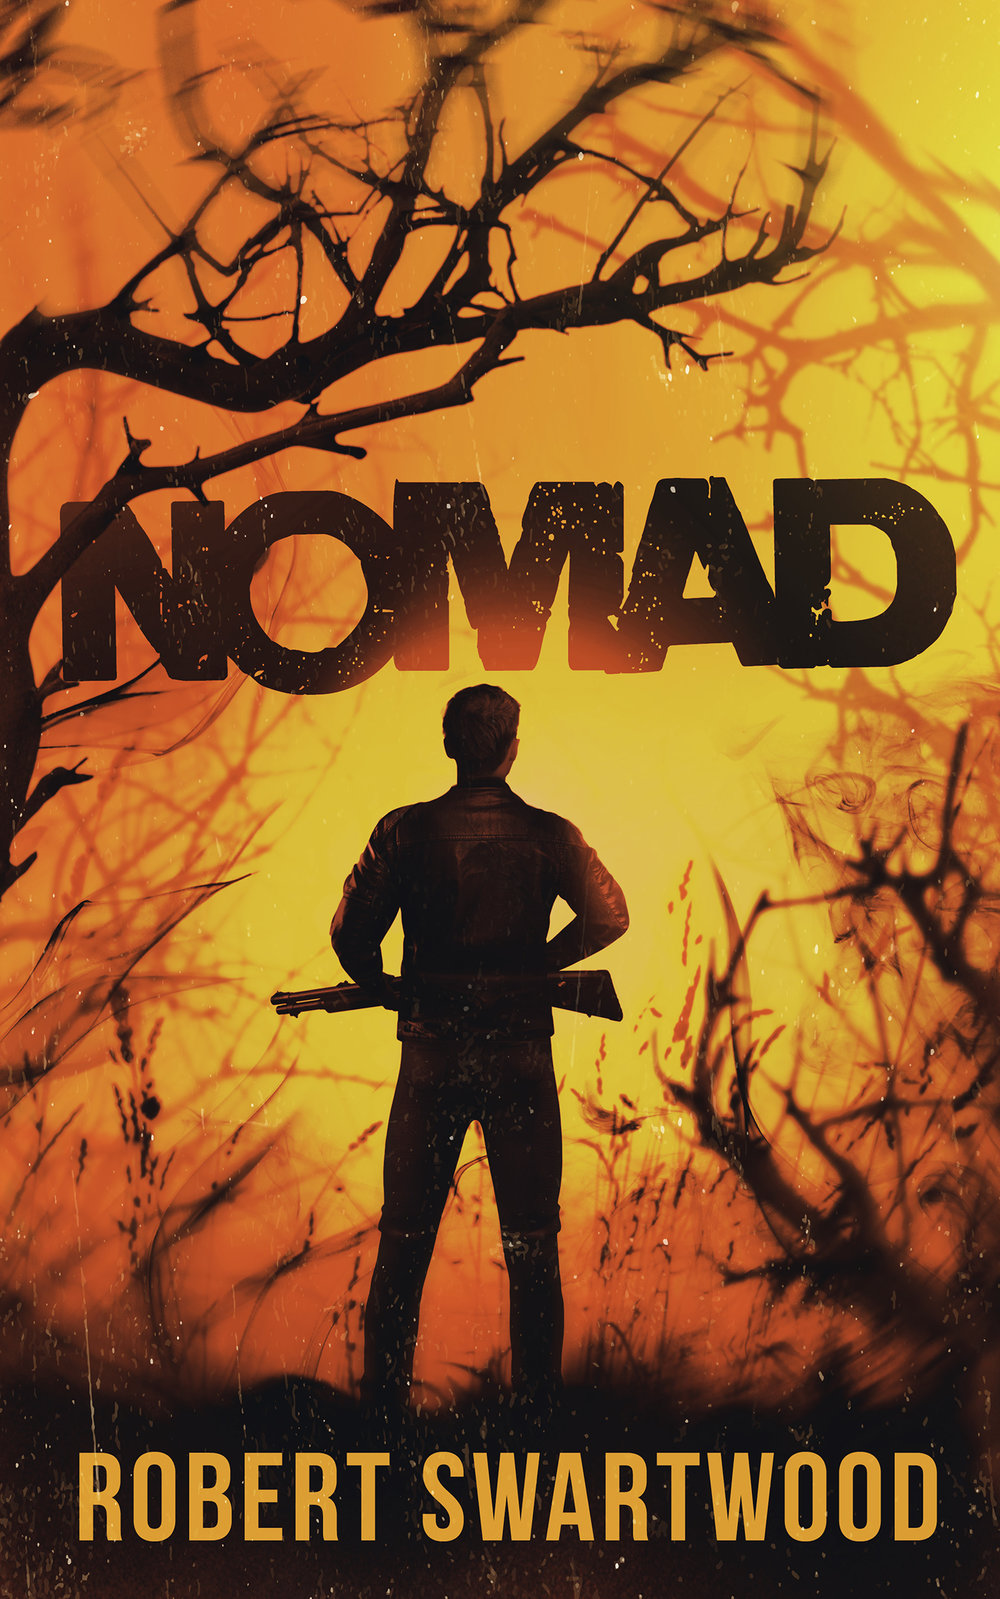 Nomad by Robert Swartwood - Ebook Small.jpg